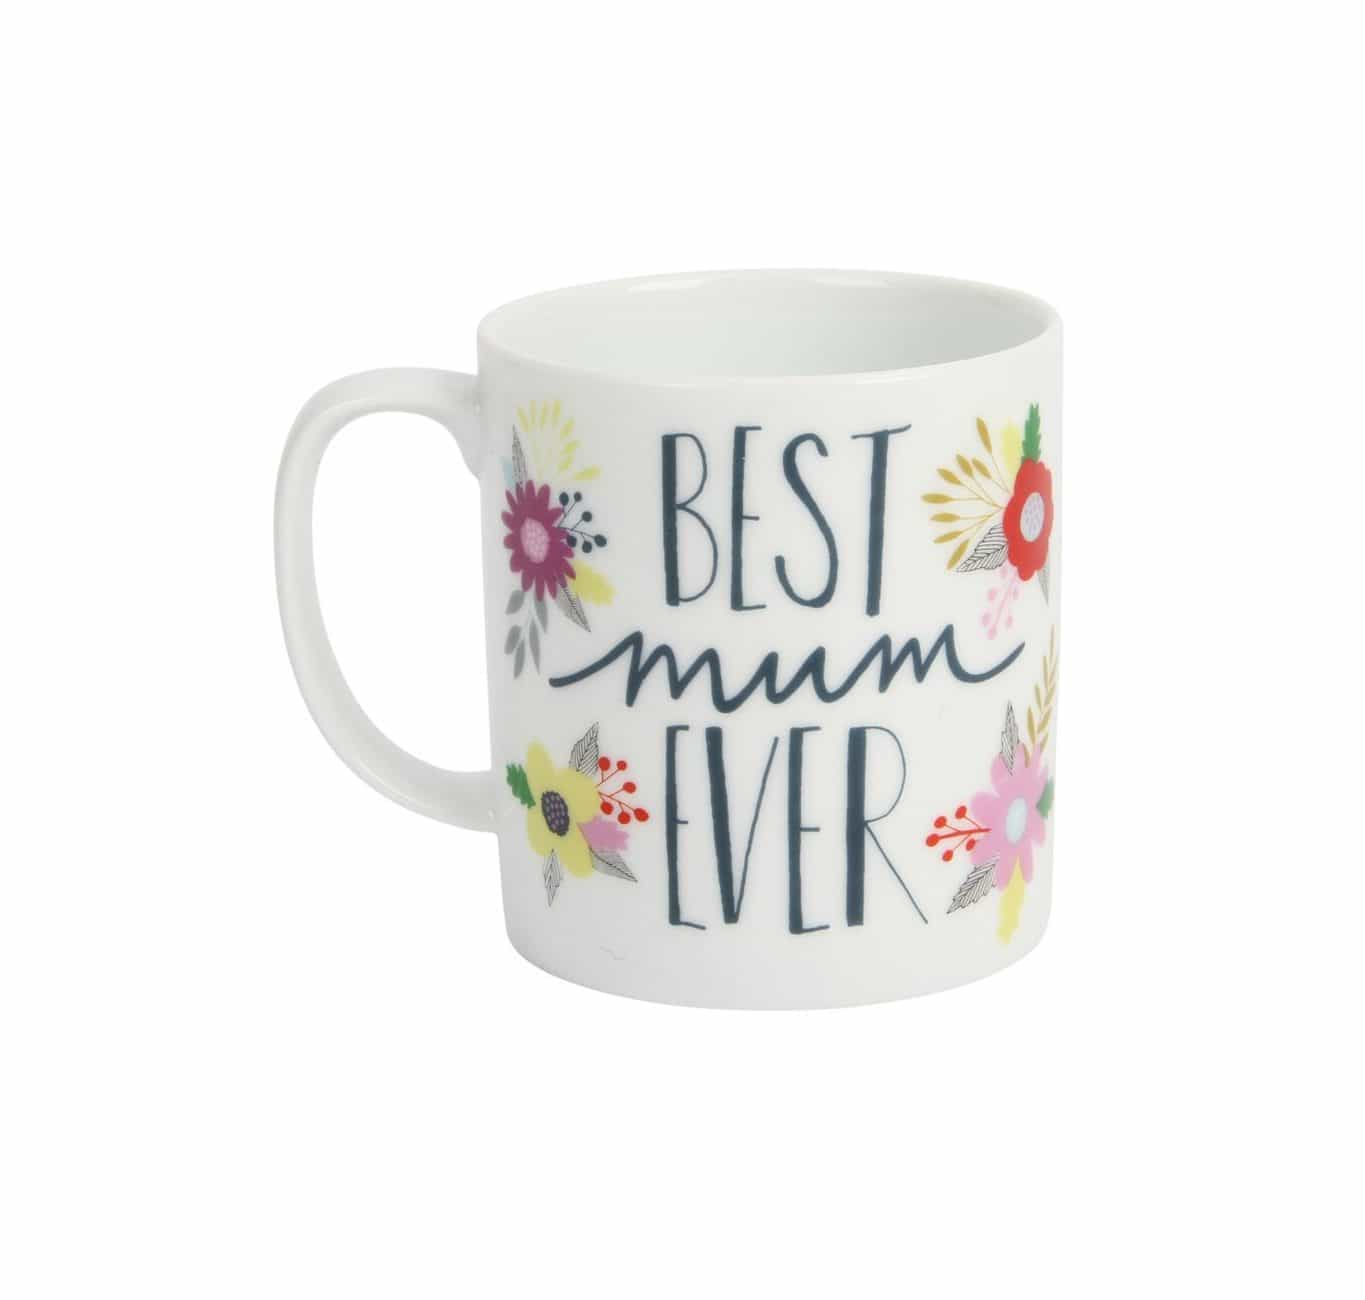 Mother's Day Gift Ideas For All Budgets from St David's Shopping Centre, Cardiff